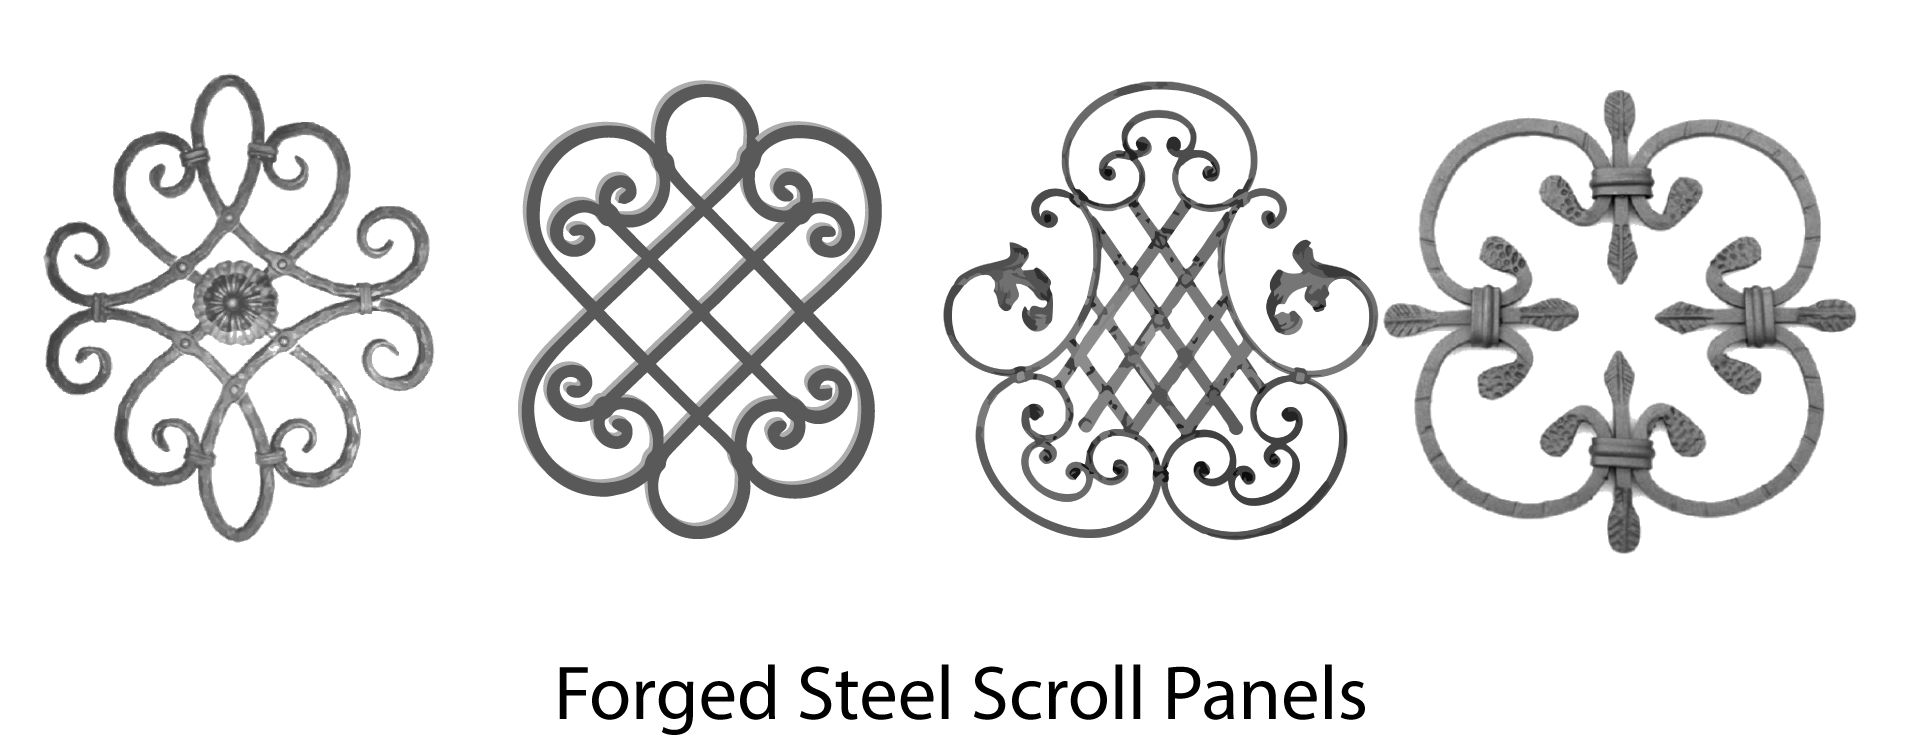 Wrought Iron Scrolls, Forged Steel Scroll Panels. Wide variety and Excellent Quality from Superior Ornamental Supply.